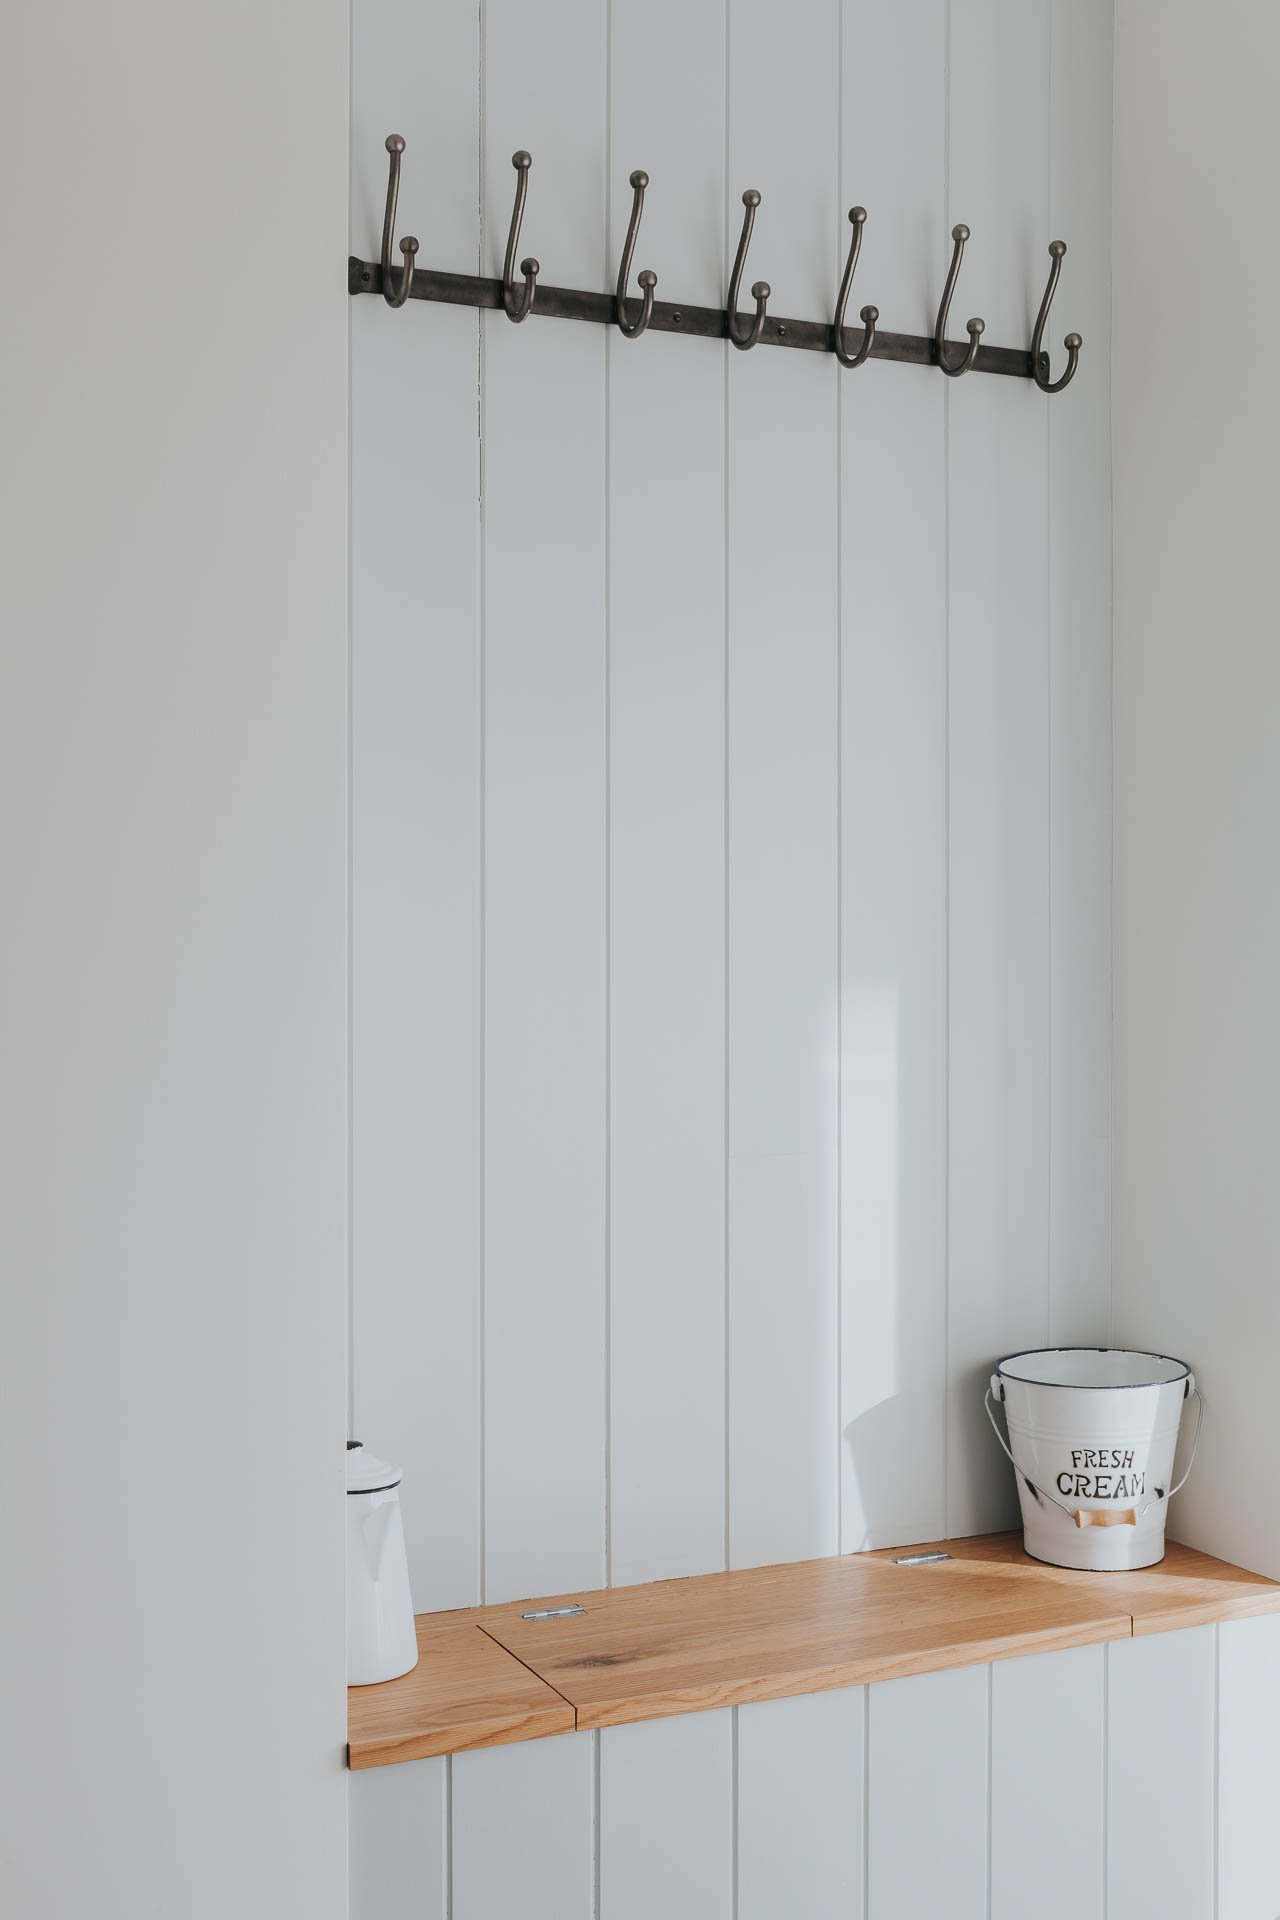 bespoke coat hanging recess with oak seat and timber wall panelling